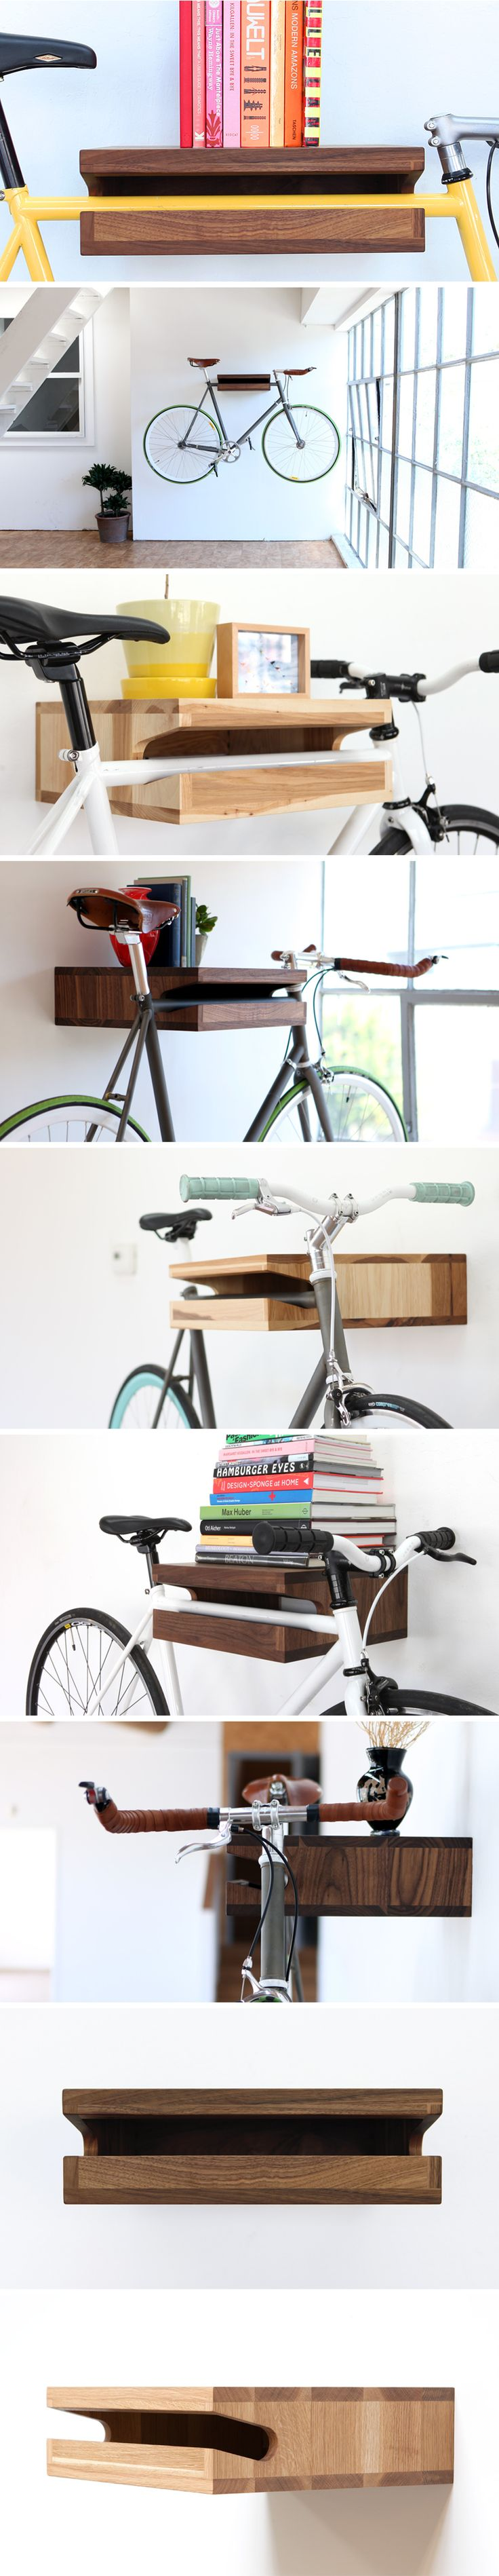 Look jeremy s bicycle rack apartment therapy - Knife Saw Home Of The Bike Shelf Other Wooden Objects Unique